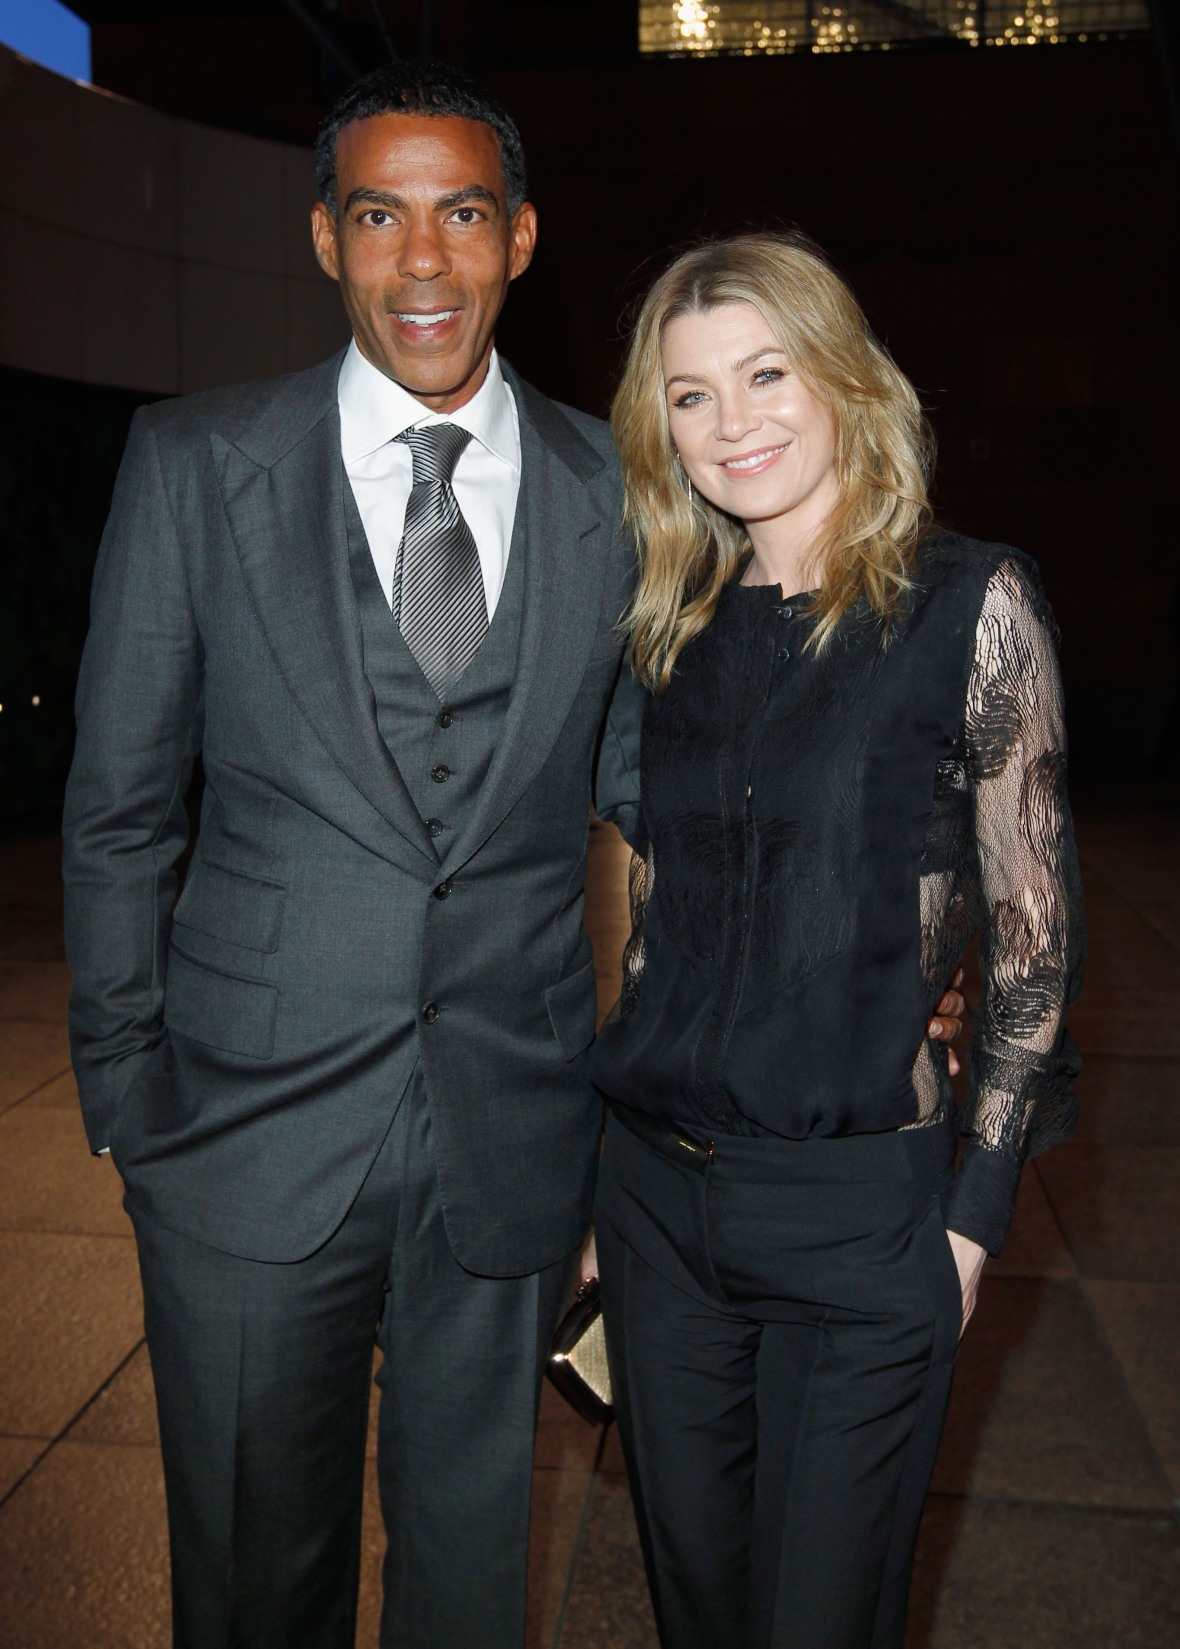 ellen pompeo getty images